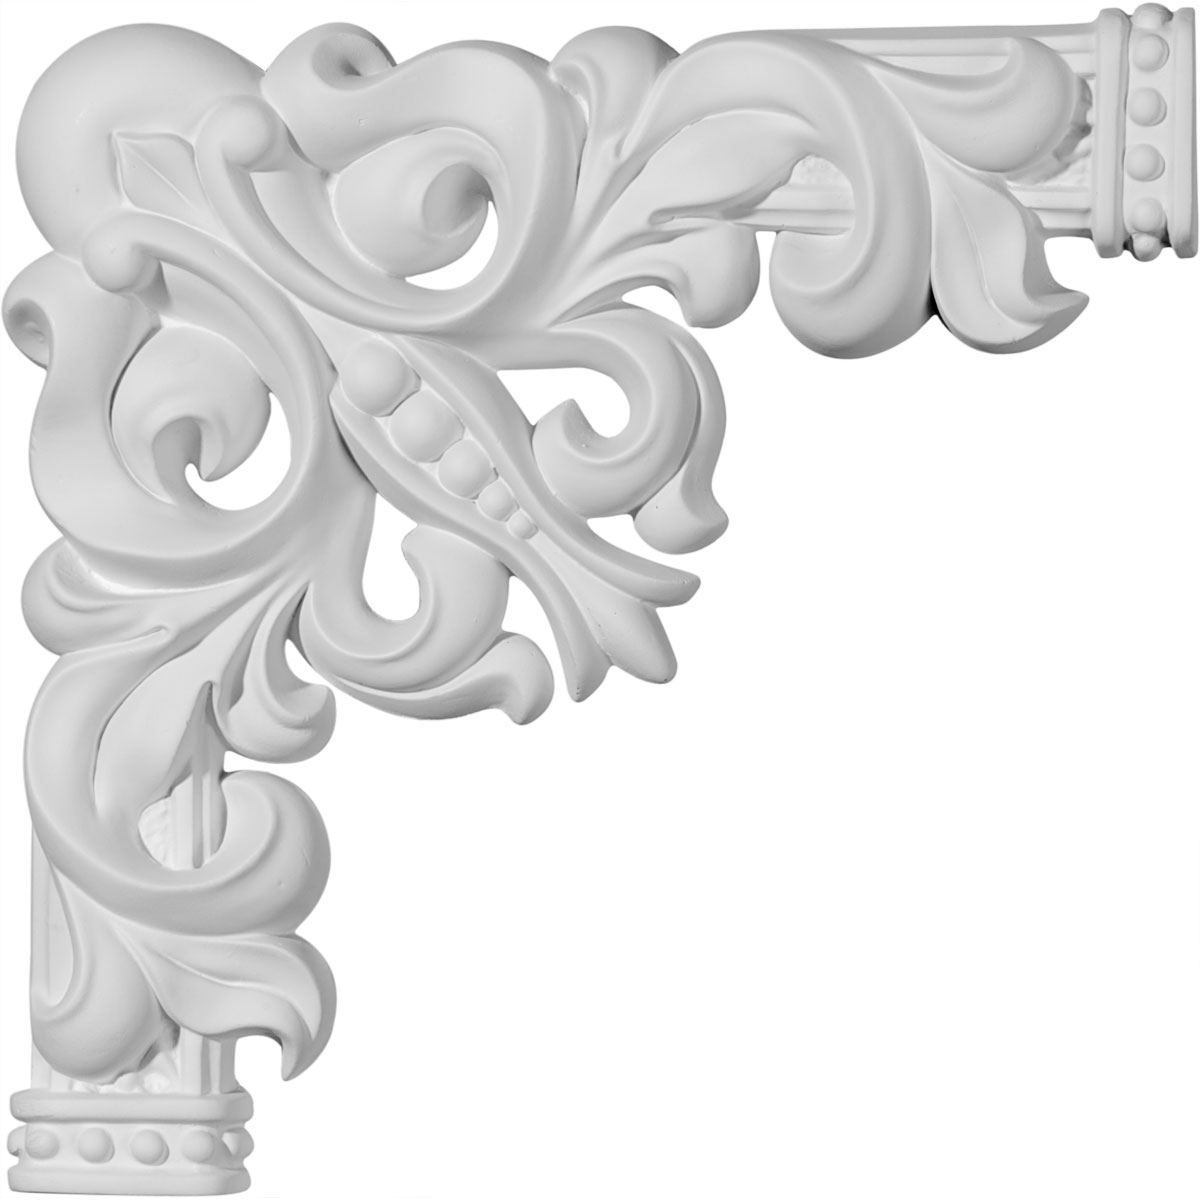 Decorative Corner Molding For Walls from www.pearlworksinc.com